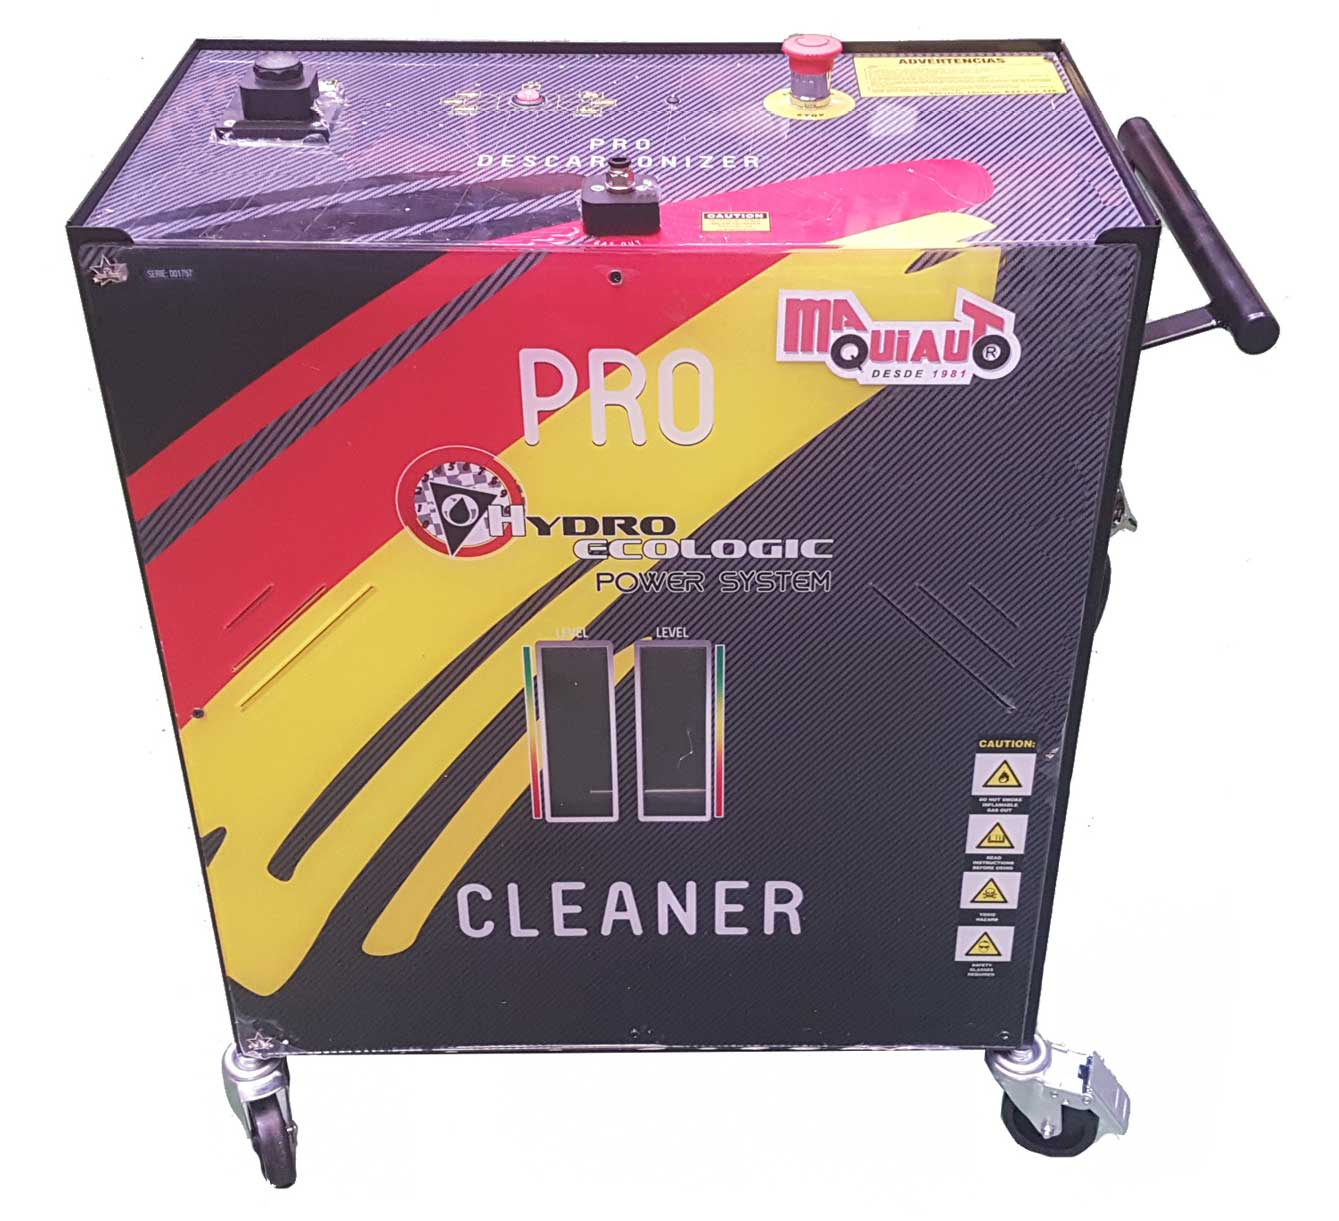 DESCARBONIZADORA PRO CLEANER